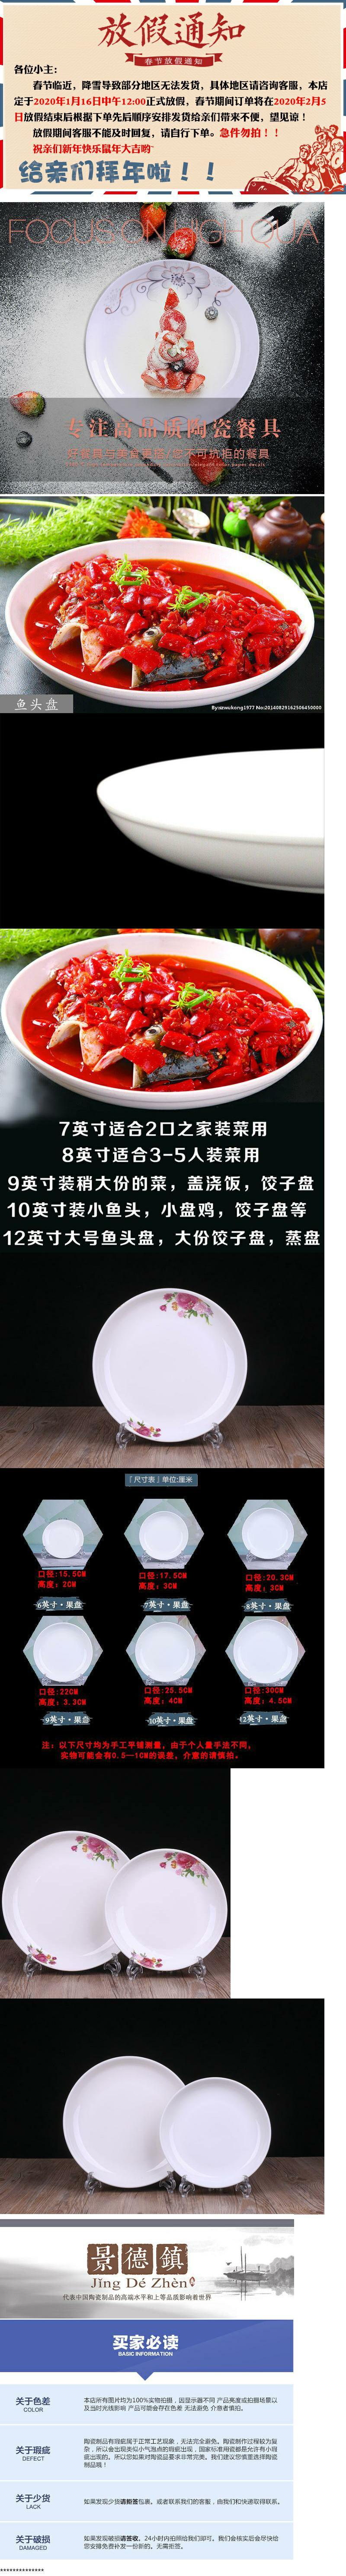 . Pepper fish head dish 12 inches deep plate household large dish 10 hotel steamed fish dish special ceramic fish head